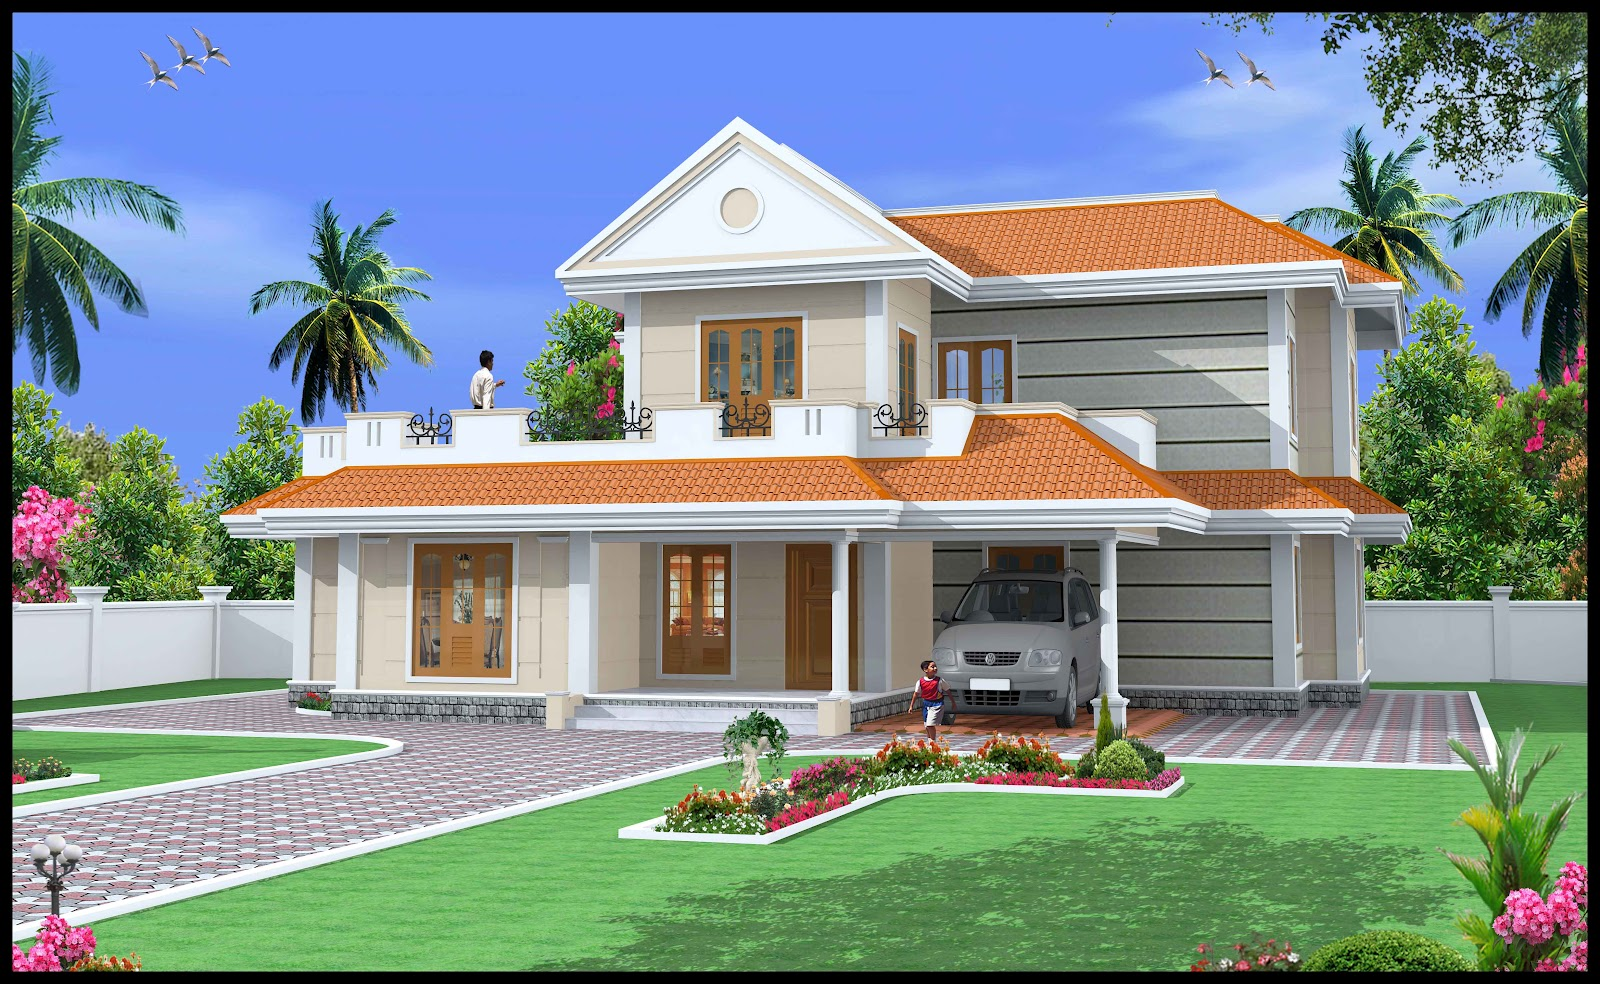 Simple duplex house design indian duplex house designs for Design duplex house architecture india